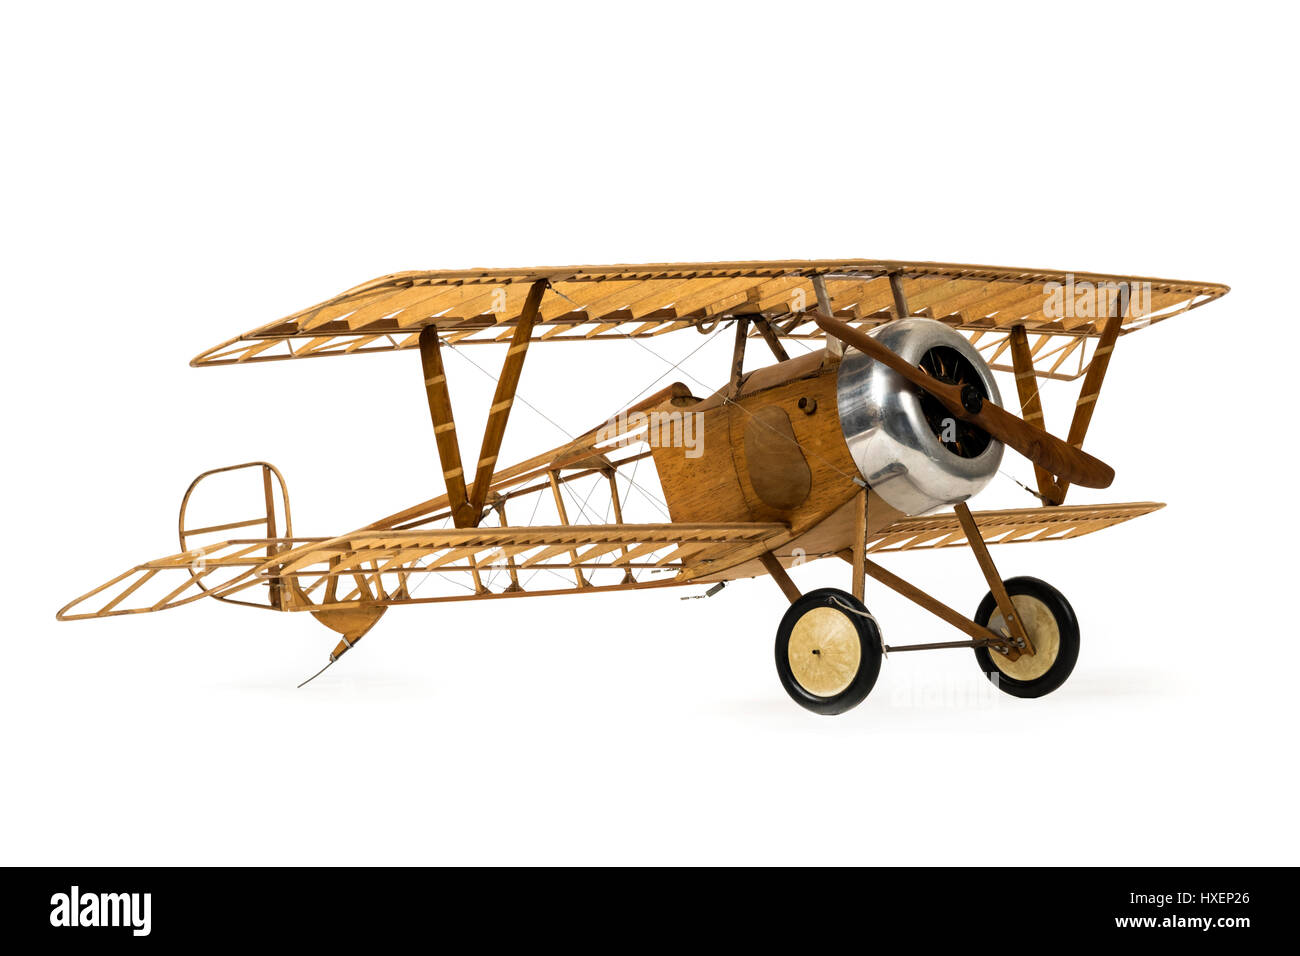 Vintage 1:6 scale skeletal model of a WW1 RFC (Royal Flying Corps) fighter aircraft, complete with Williams Bros. - Stock Image